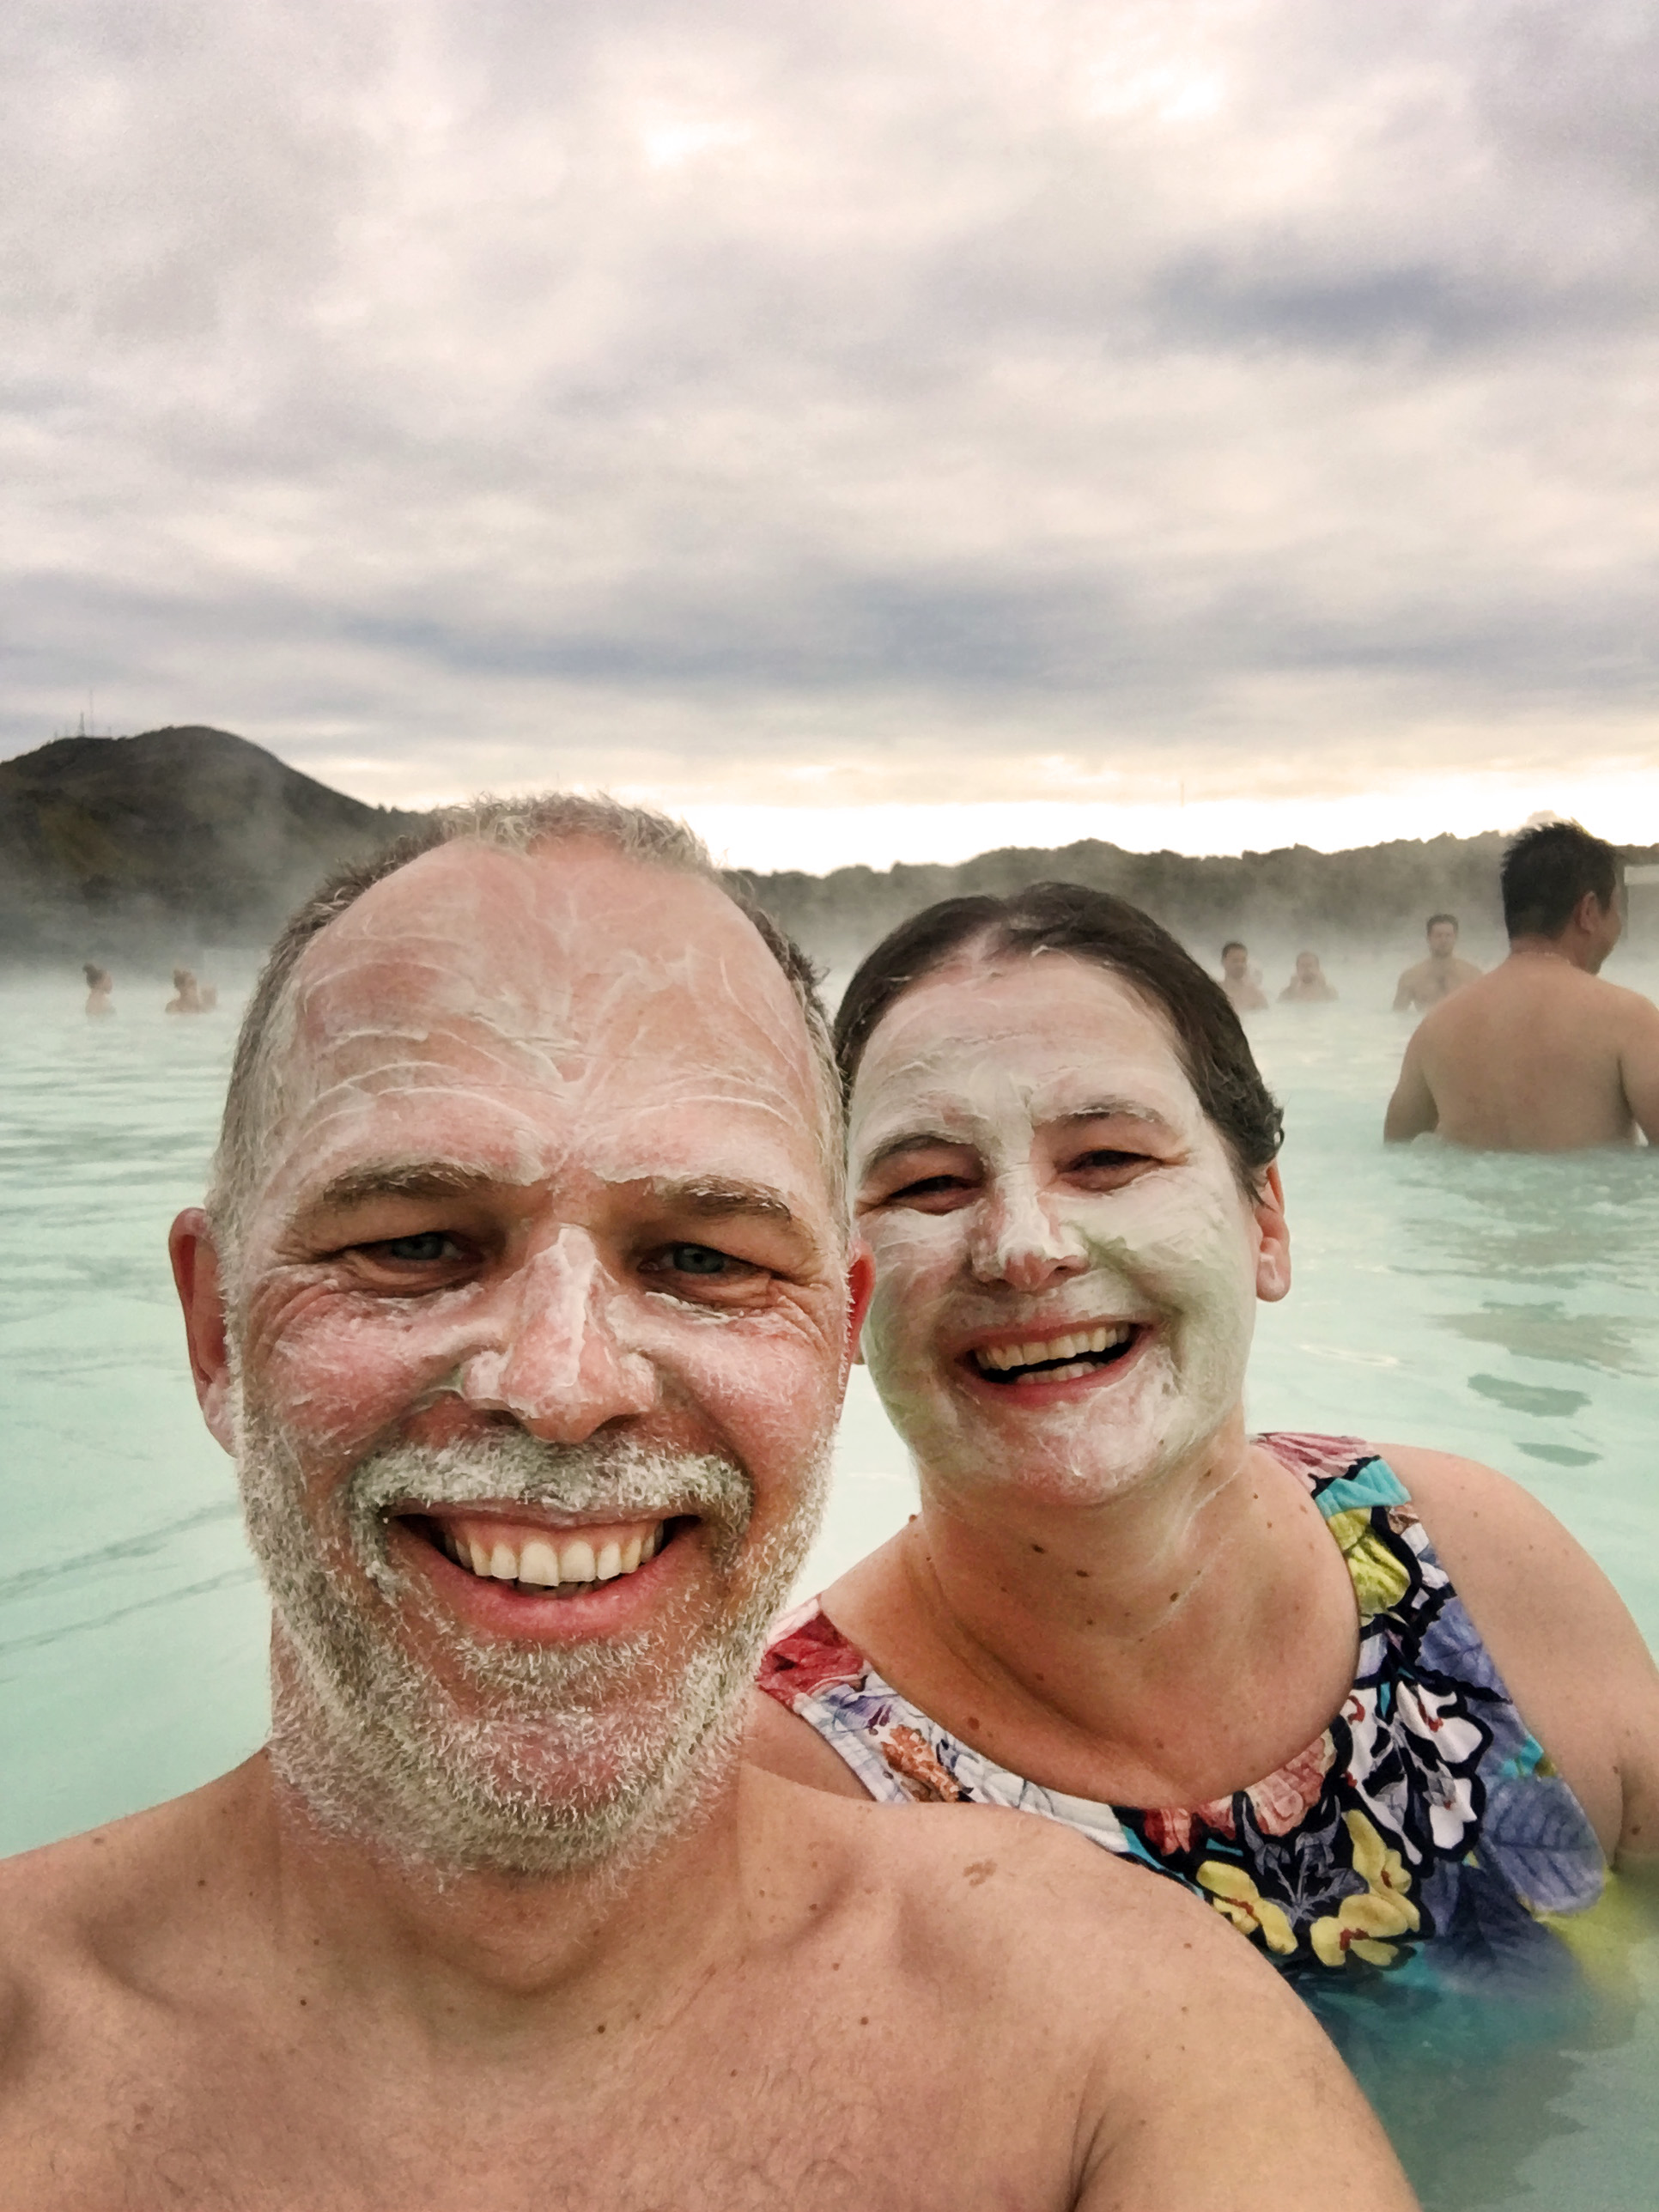 Face masks, drinks and good laughs at the Blue Lagoon